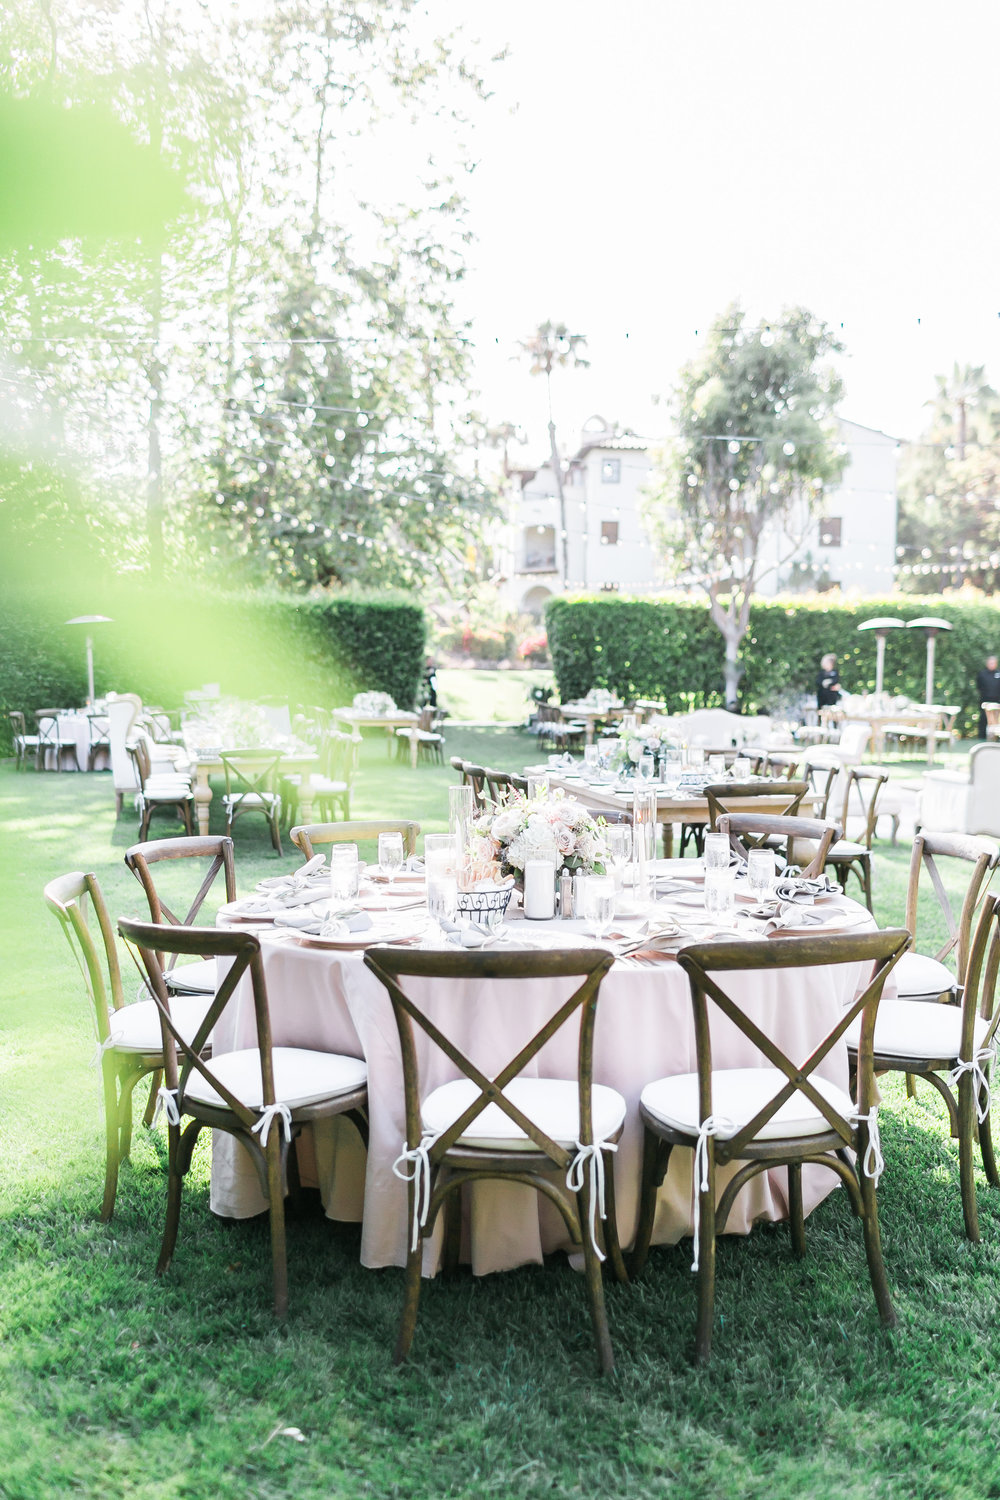 Outdoor garden wedding surrounded by hedges, with wooden tables and chairs.       Destination Wedding Planner  ANDREA EPPOLITO EVENTS   ·  Images by  J.ANNE P  HOTOOGRAPHY   ·  Video  HOO FILMS   ·  Venue Ritz Carlton Bacara Santa Barbara  · Gown MONIQUE LHULLIER  · Bridesmaids Dresses  SHOW ME YOUR MUMU  · Stationery  SHE PAPERIE  · Bride's Shoes  BADGLEY MISCHKA  · Hair and Makeup  TEAM HAIR AND MAKEUP  · Floral  BLUE MAGNOLIA  · Linen  LA TAVOLA  · Decor Rentals  TENT MERCHANT  · Calligraphy  EBB  ·Lighting  FIVE STAR AV  · Ice Cream Station  MCCONNELL'S ICE CREAM